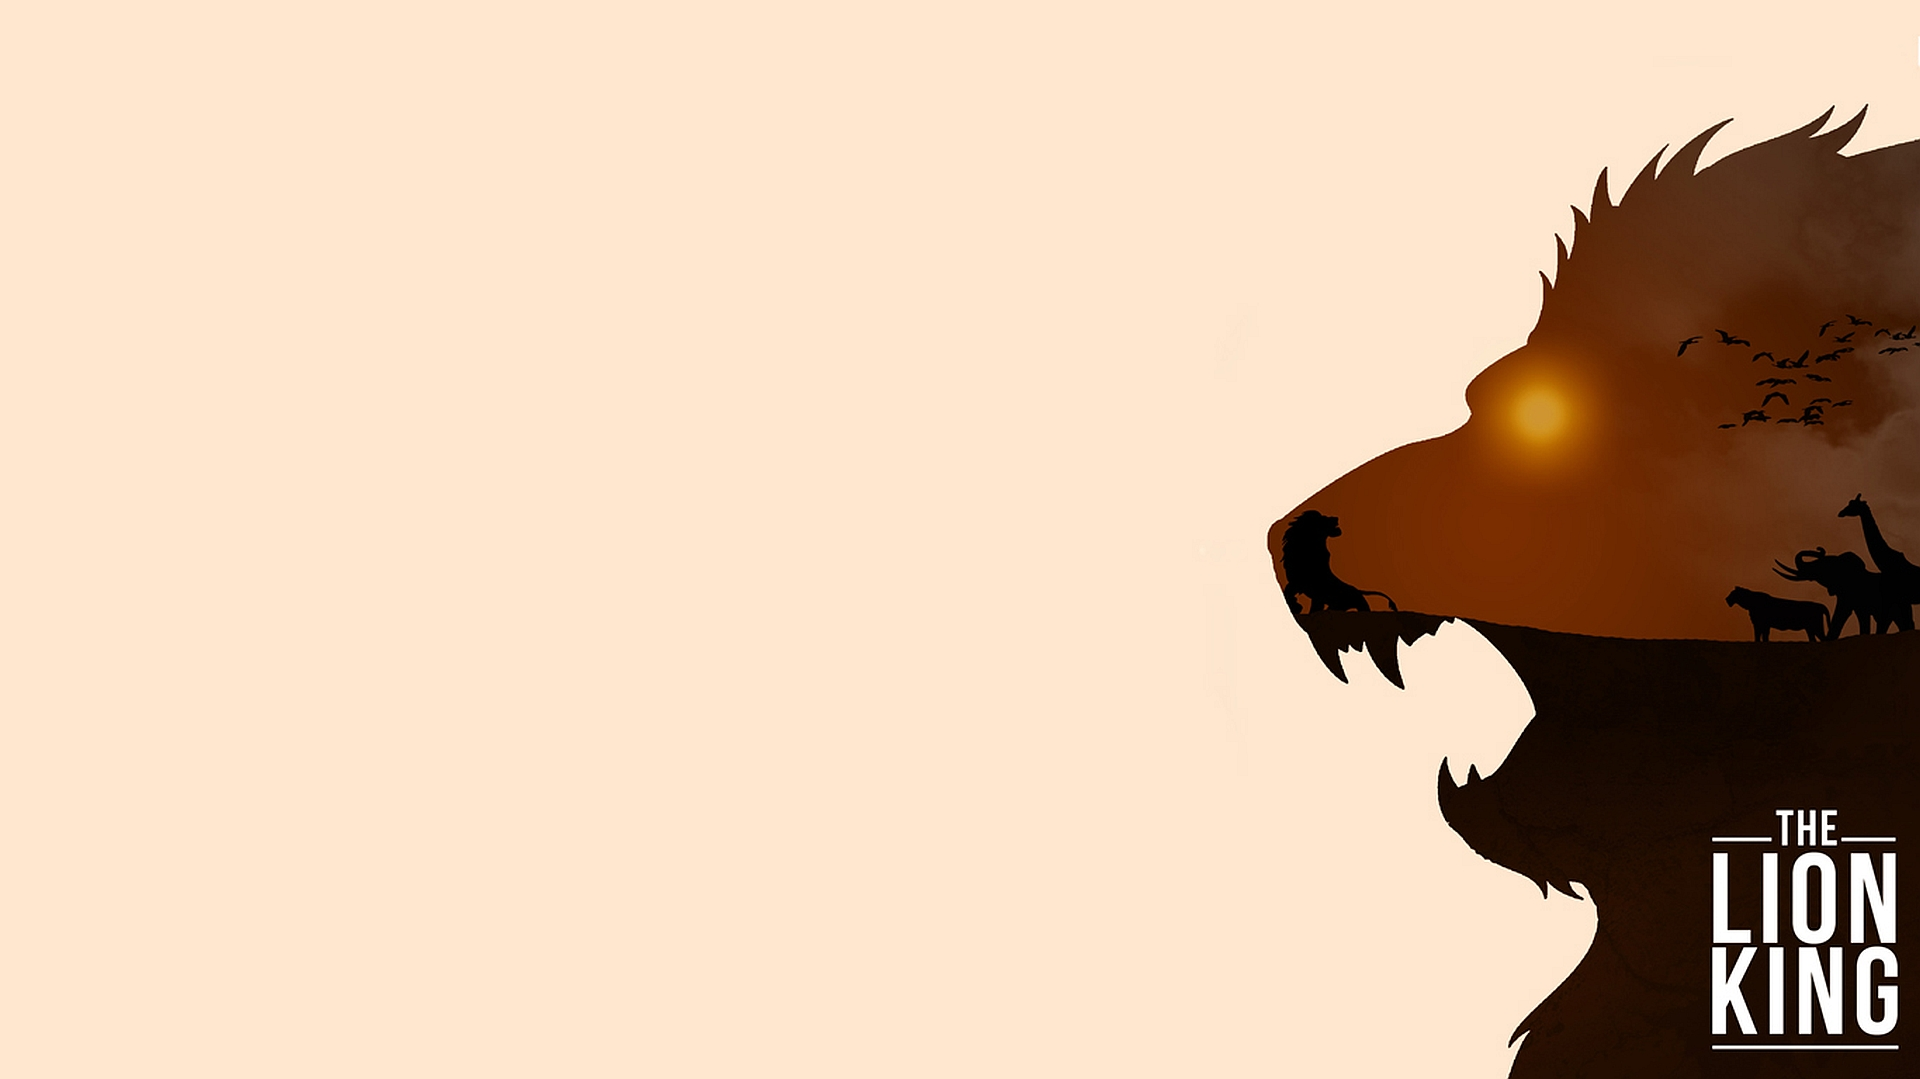 The Lion King Wallpaper And Background